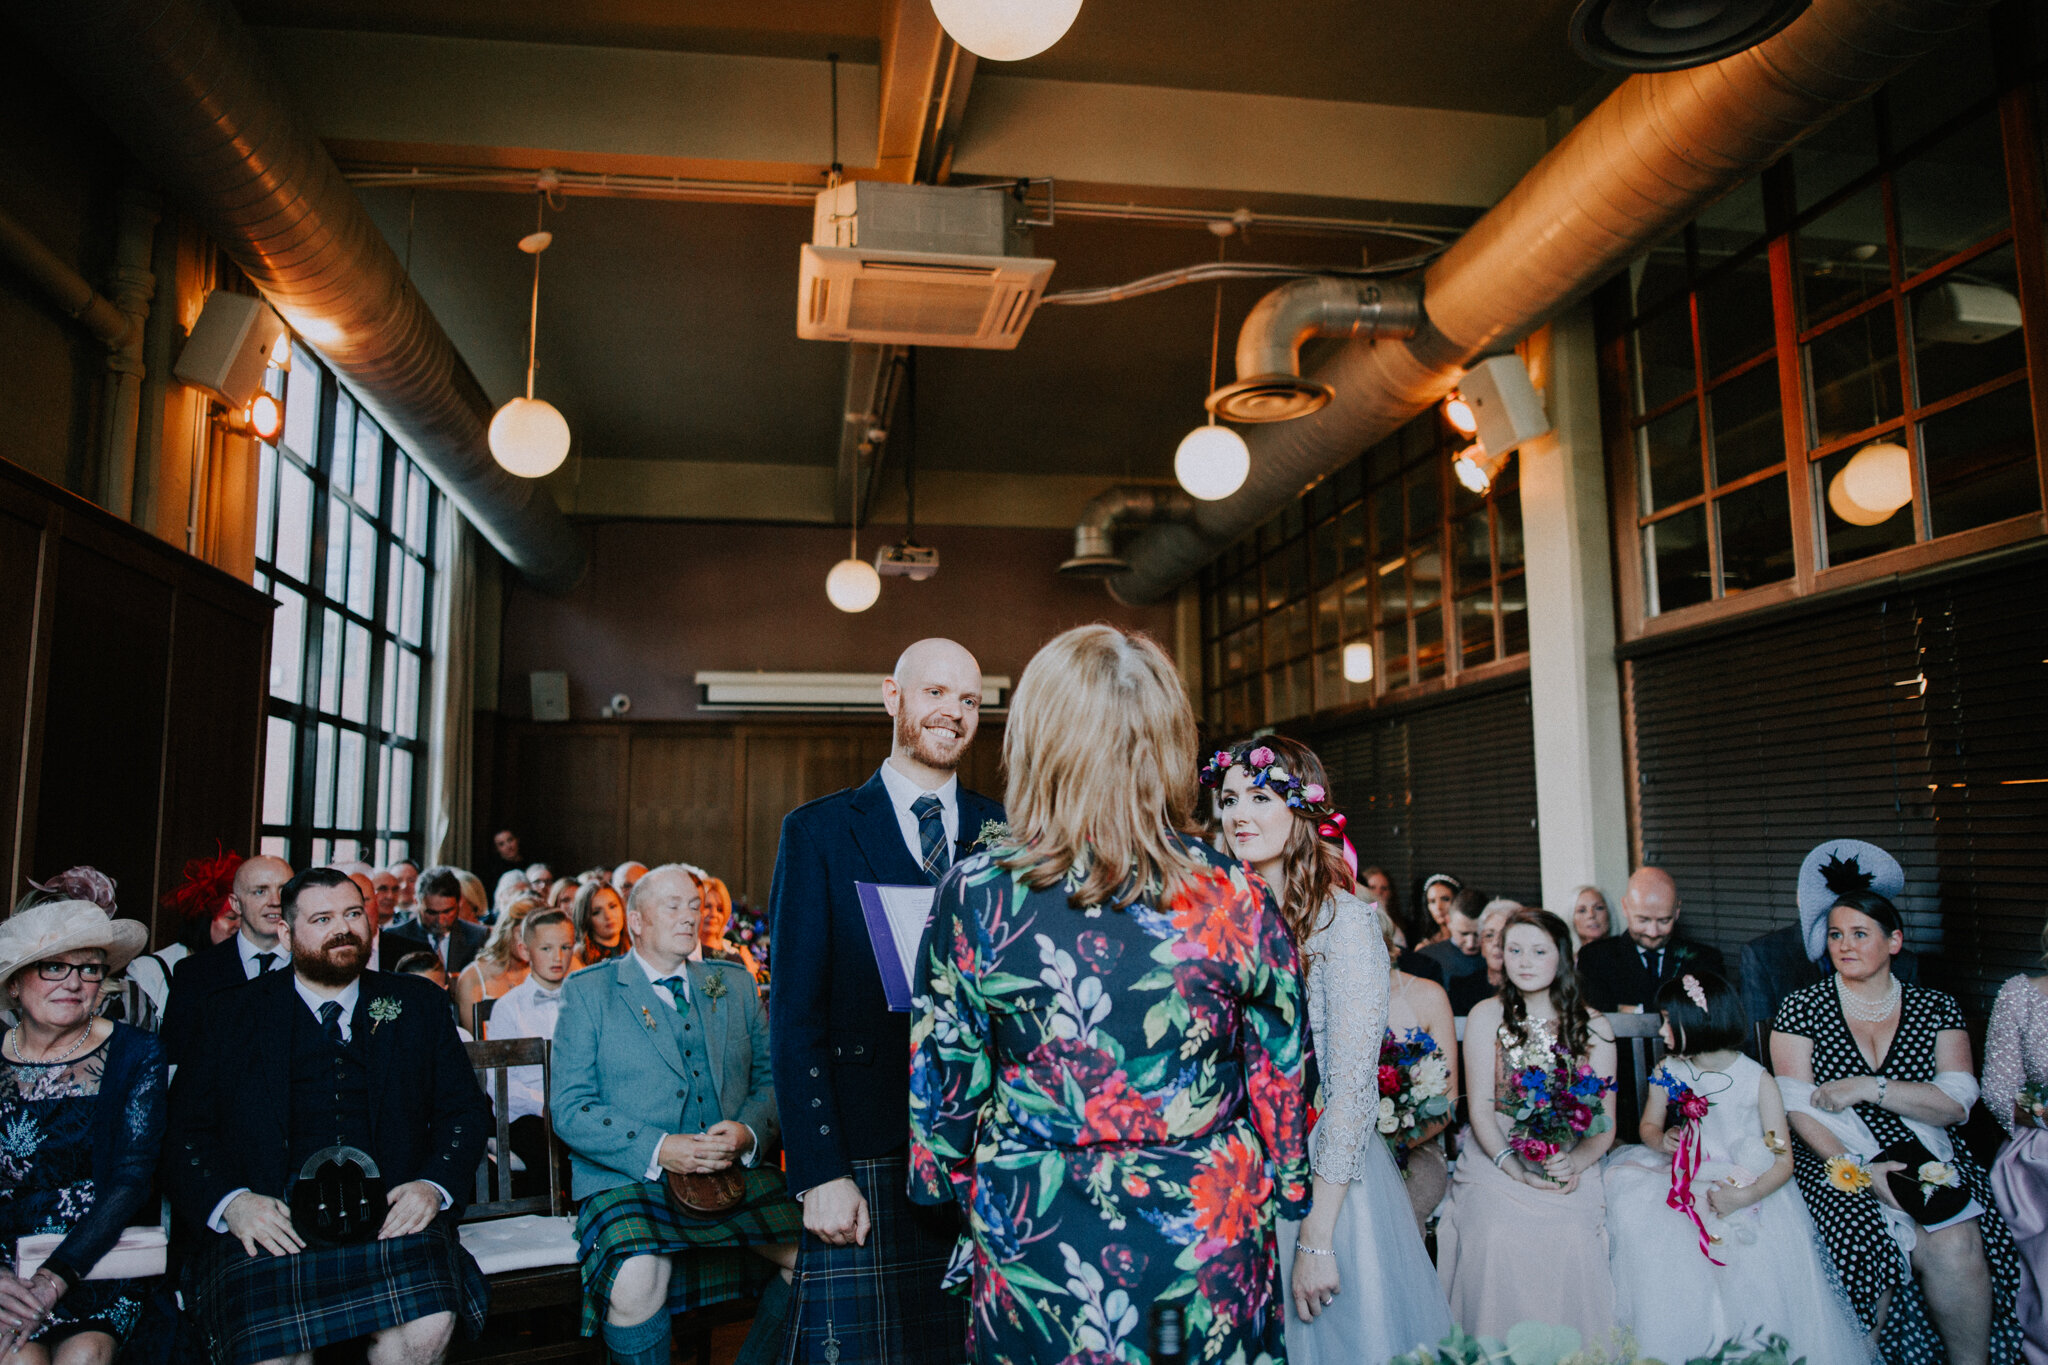 Wedding ceremony at West on the Green